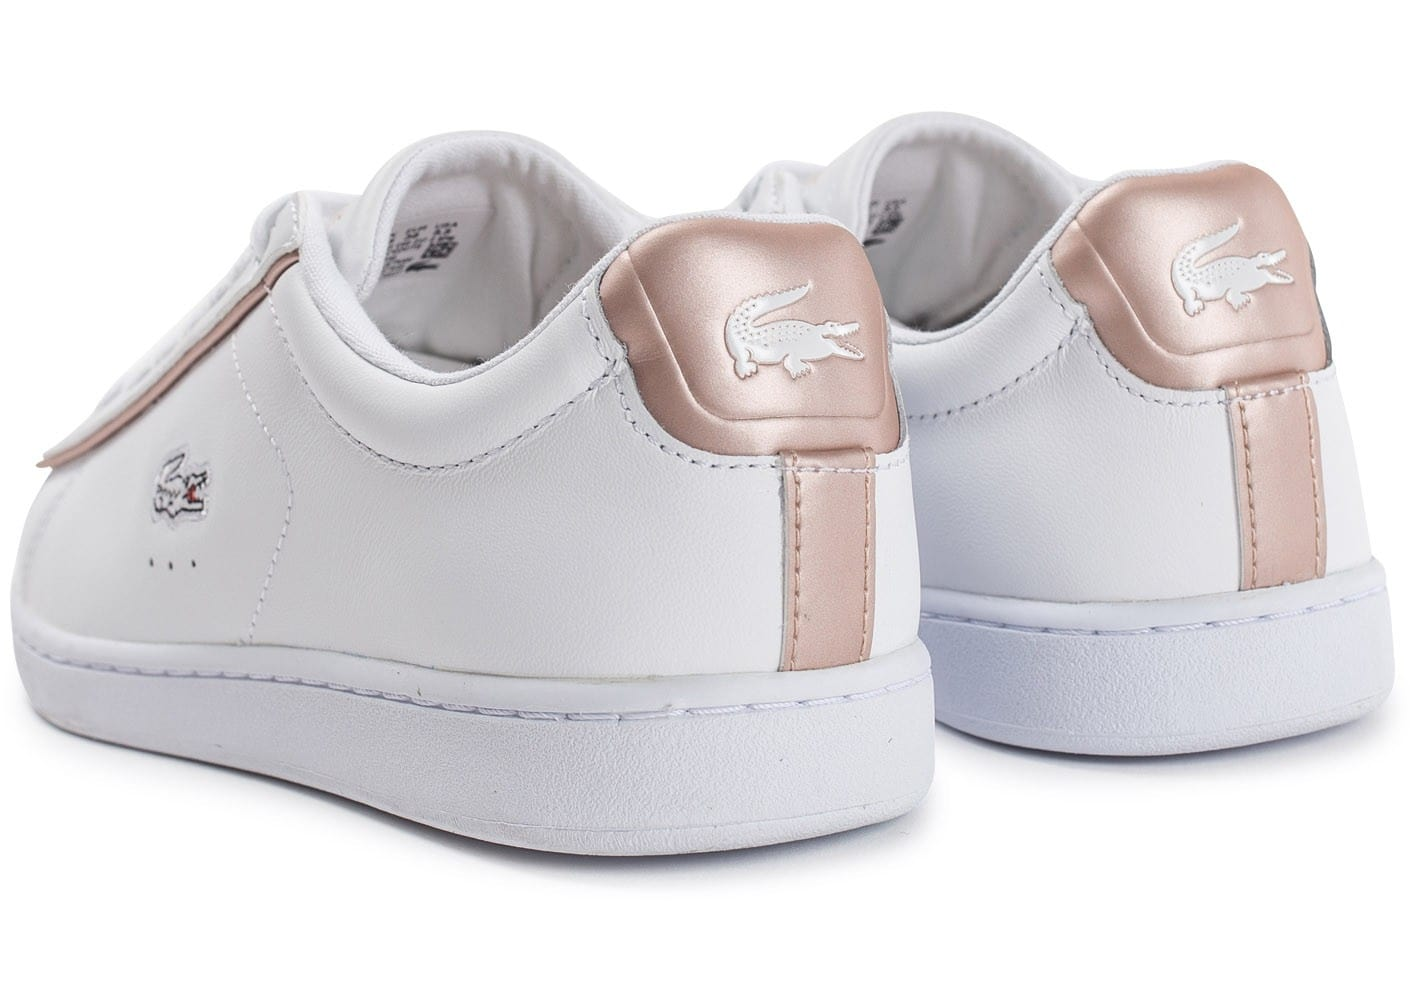 Lacoste Carnaby EVO blanche et rose perle